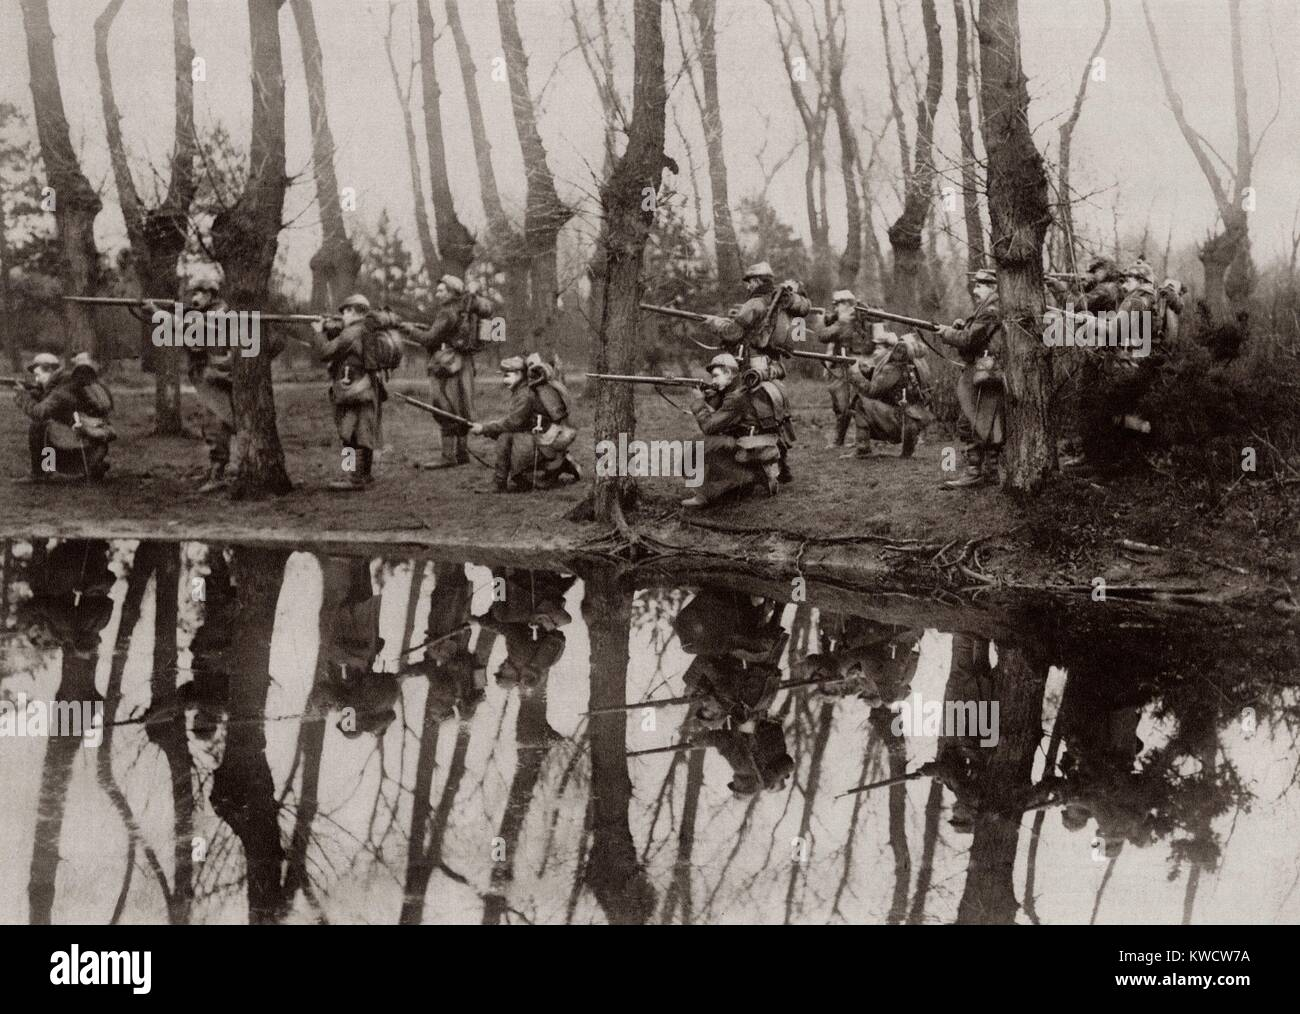 World War 1. French soldiers in a flooded section of northwest France, mirrored in a rain filled pool. Nov-Dec. - Stock Image